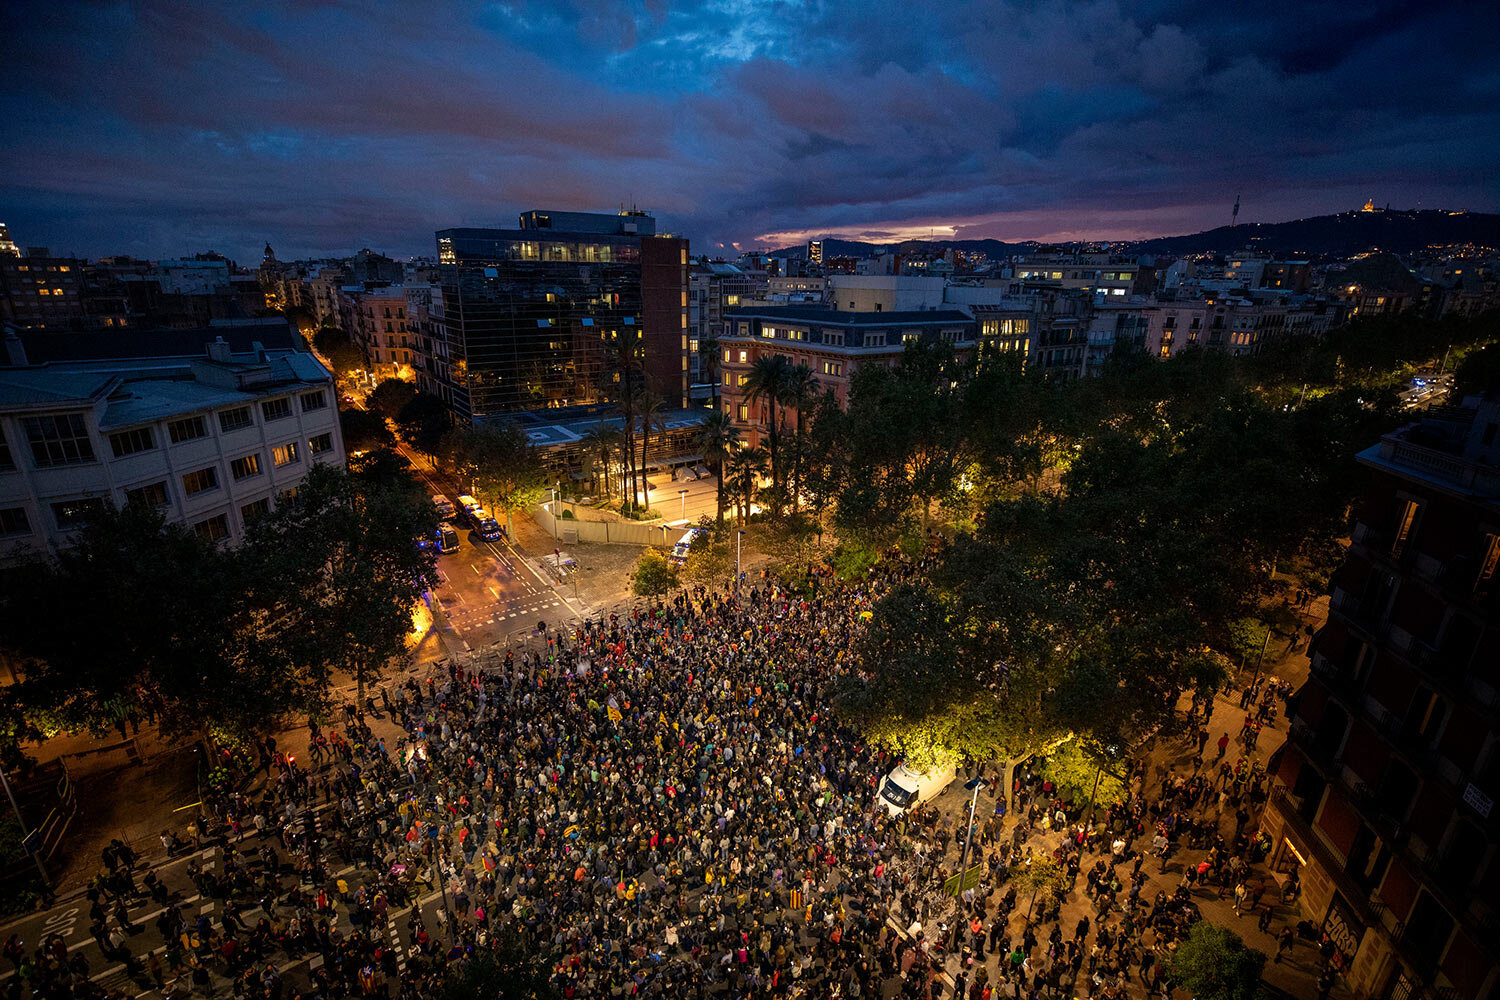 Pro-independence demonstrators gather next to the department of Interior in Catalonia, during a demonstration in Barcelona, Spain, Monday, Oct. 21, 2019. Protesters are angered by a Supreme Court verdict that sentenced nine separatist leaders to prison. (AP Photo/Emilio Morenatti)